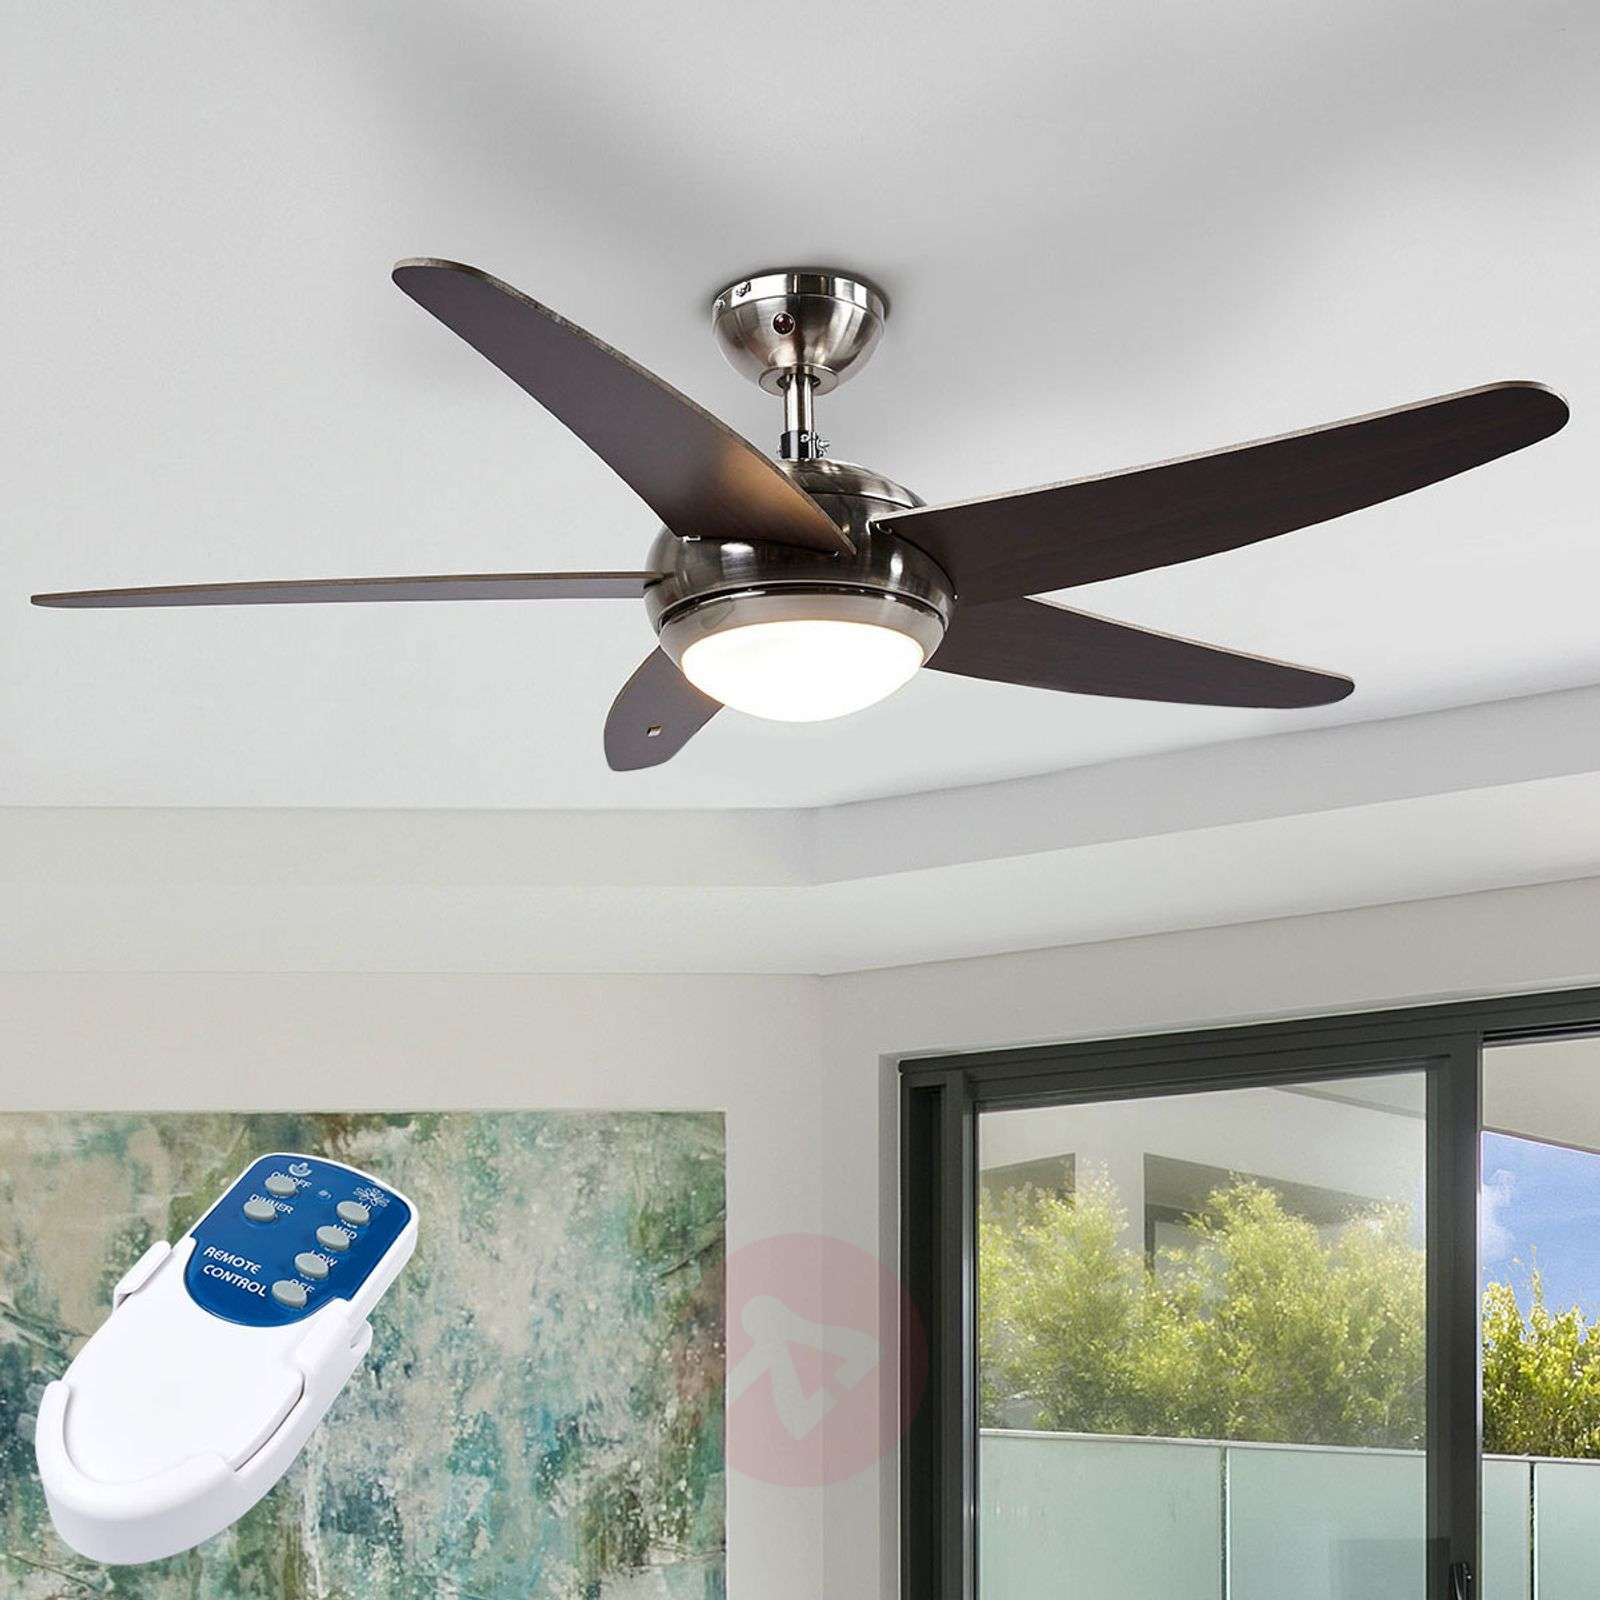 Anneka wenge-coloured ceiling fan with light-4018091-02